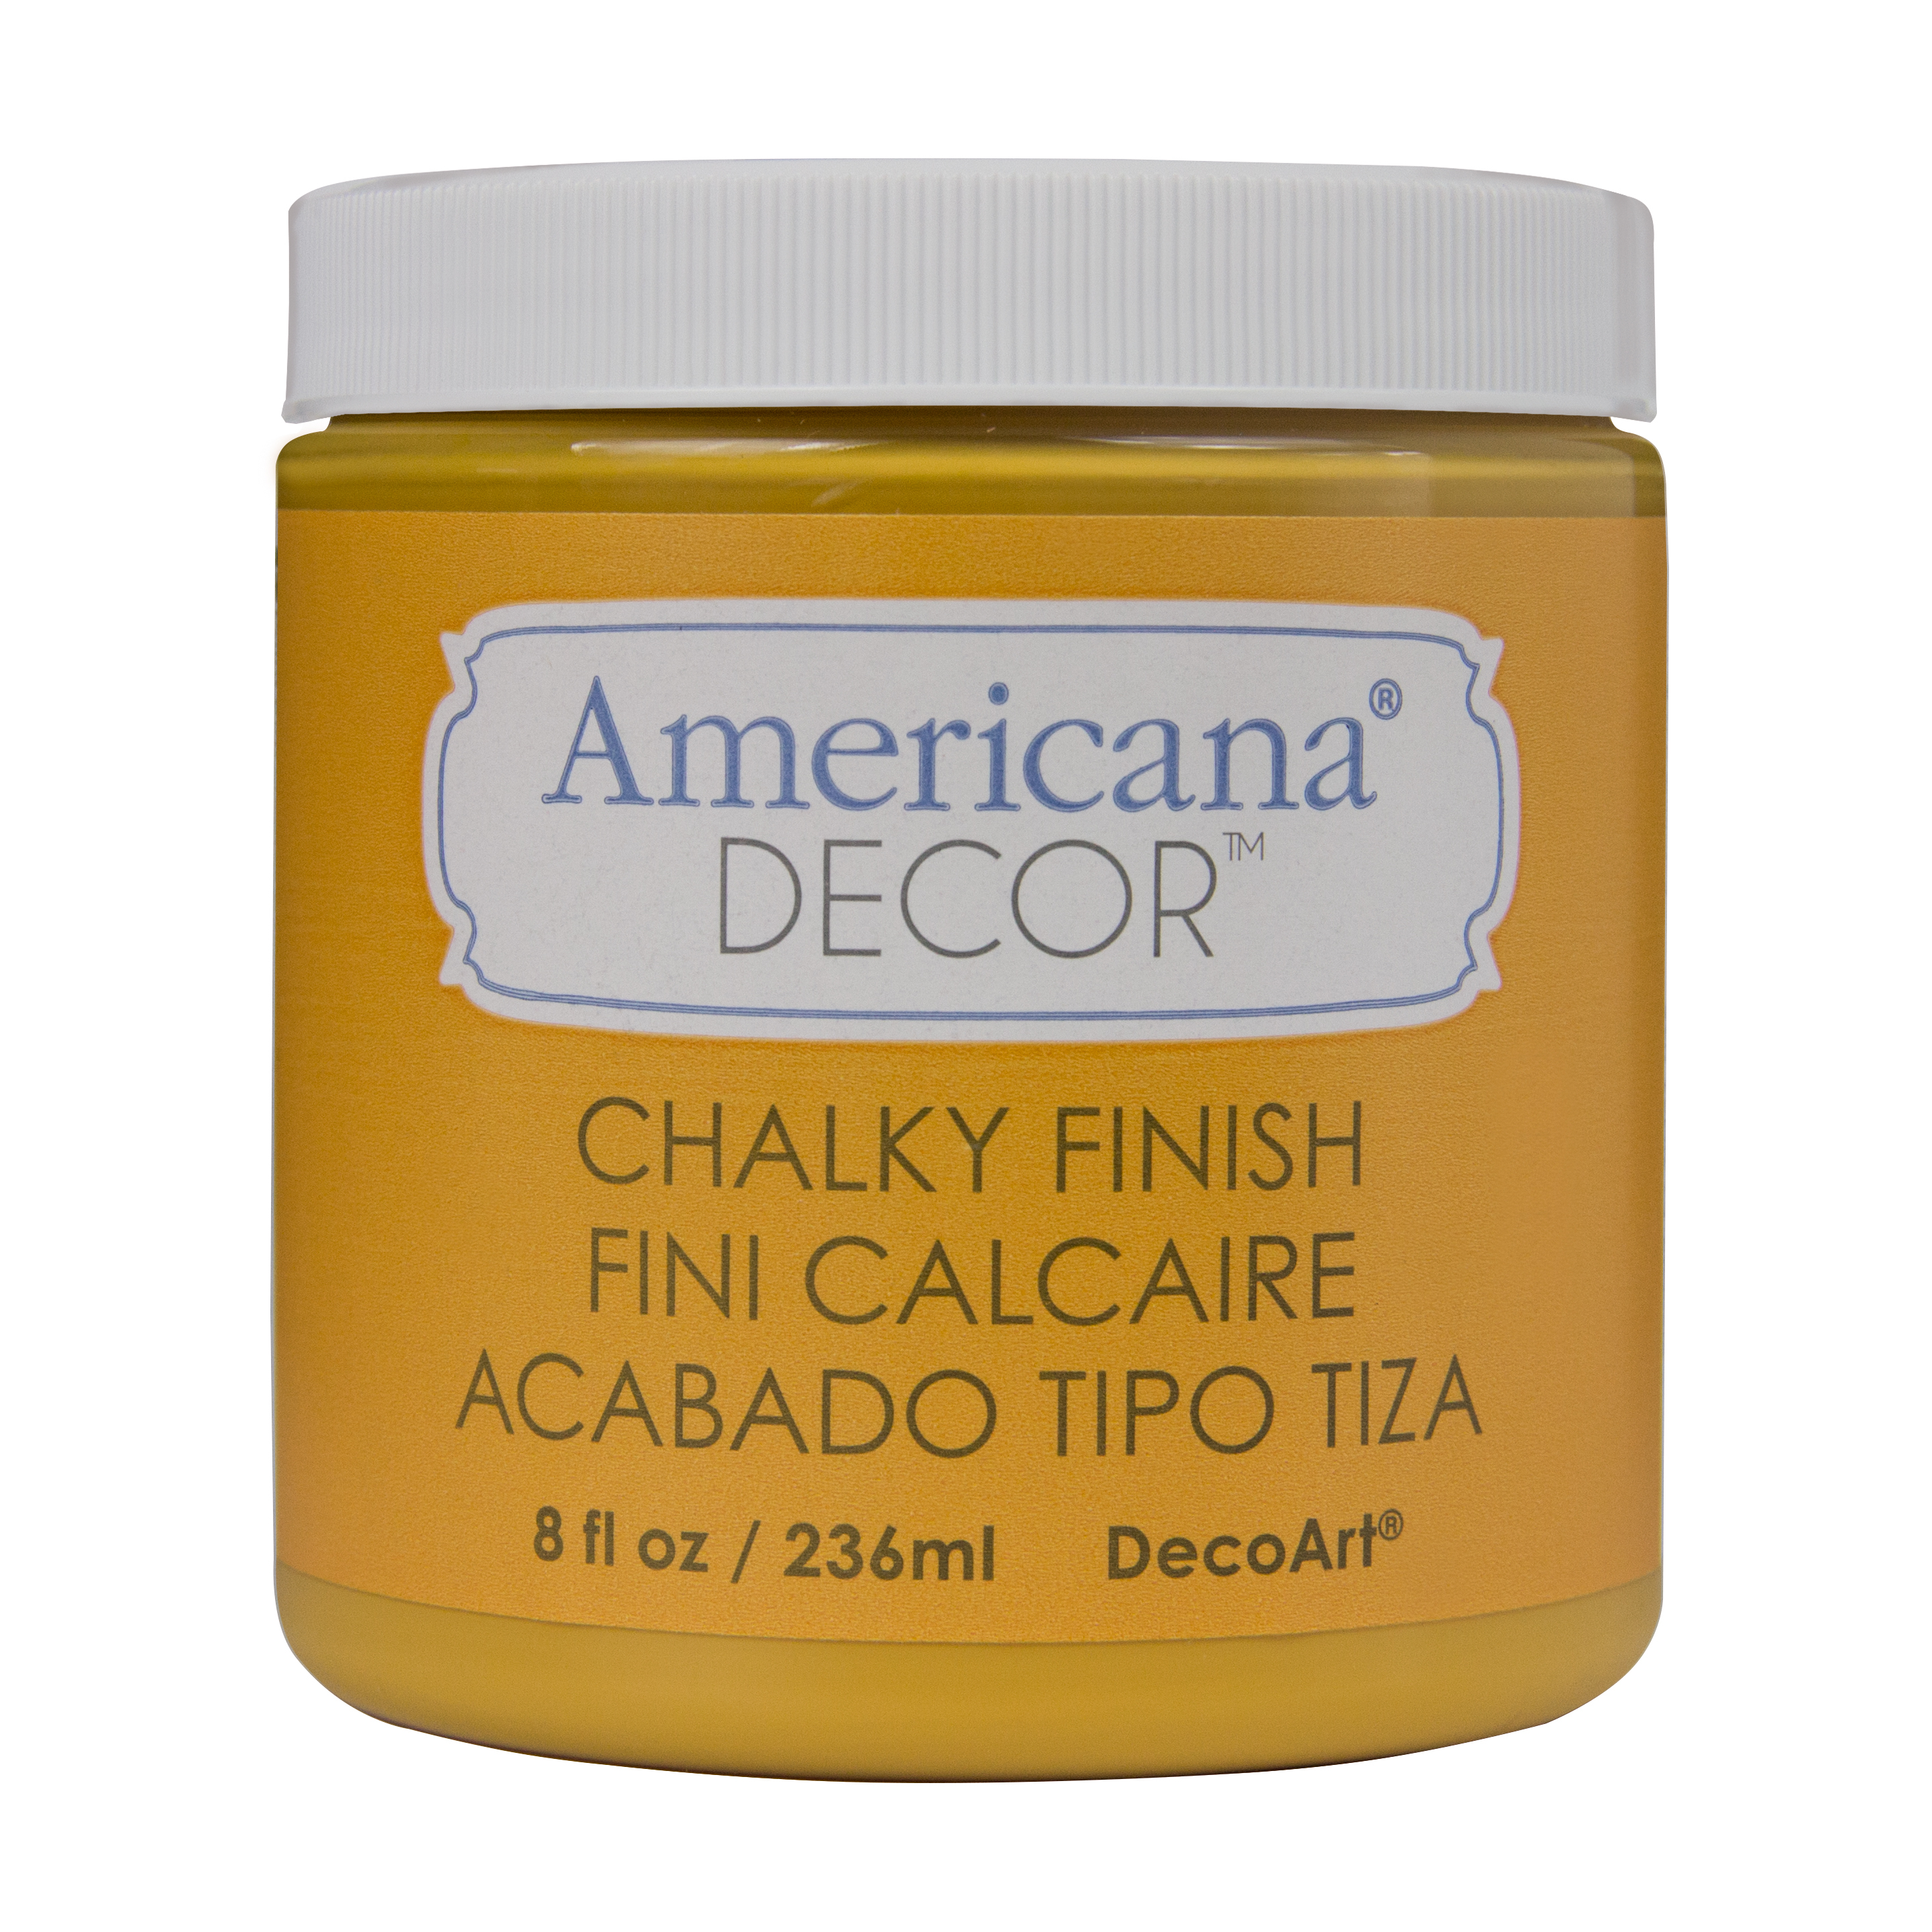 INHERITANCE CHALKY FINISH 236ml AMERICANA DECOR